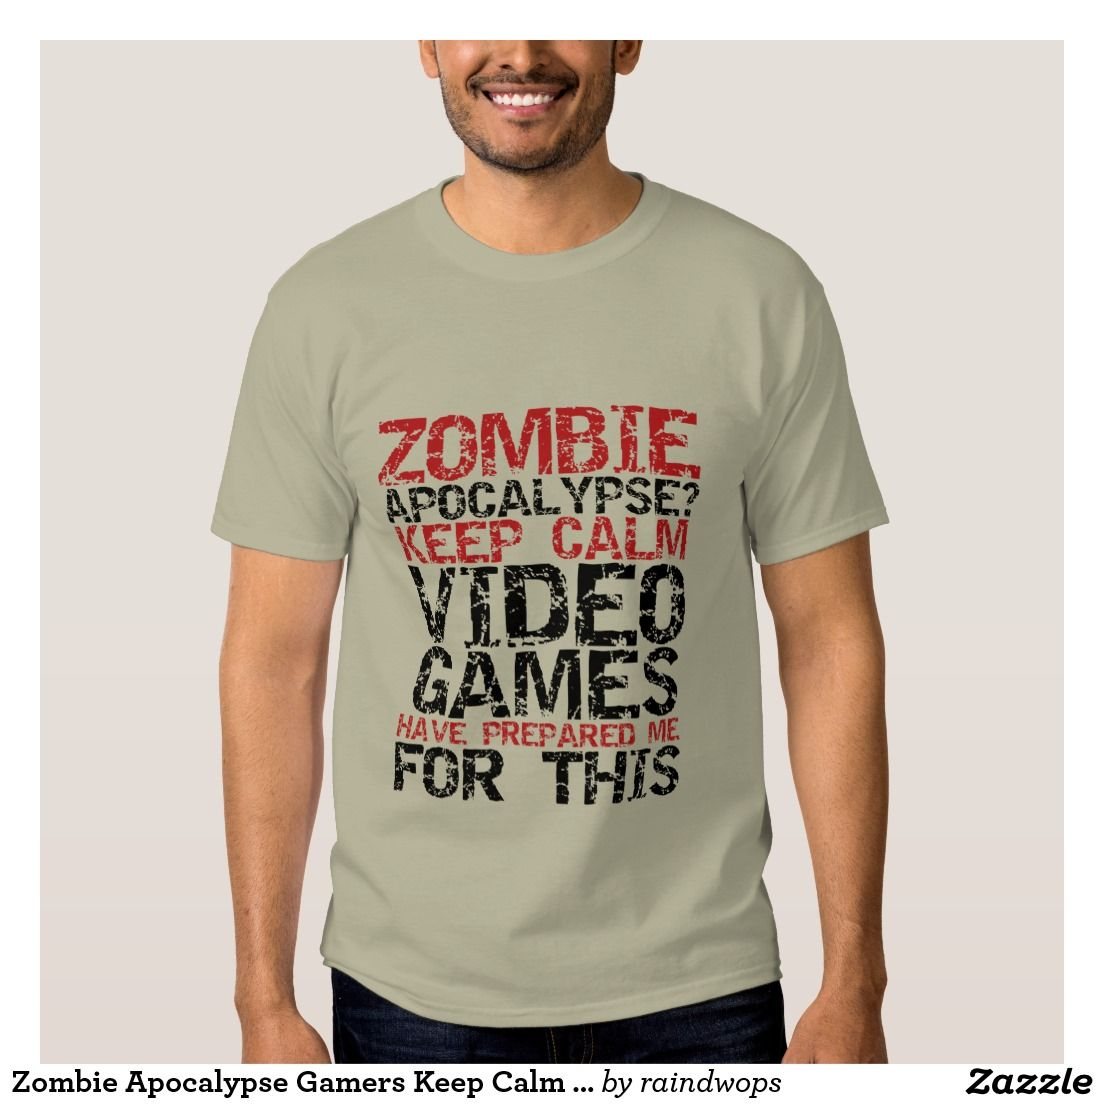 Zombie Apocalypse Gamers Keep Calm Funny T Shirt Zazzle Com Funny Gamer Quote Funny Tshirts T Shirt